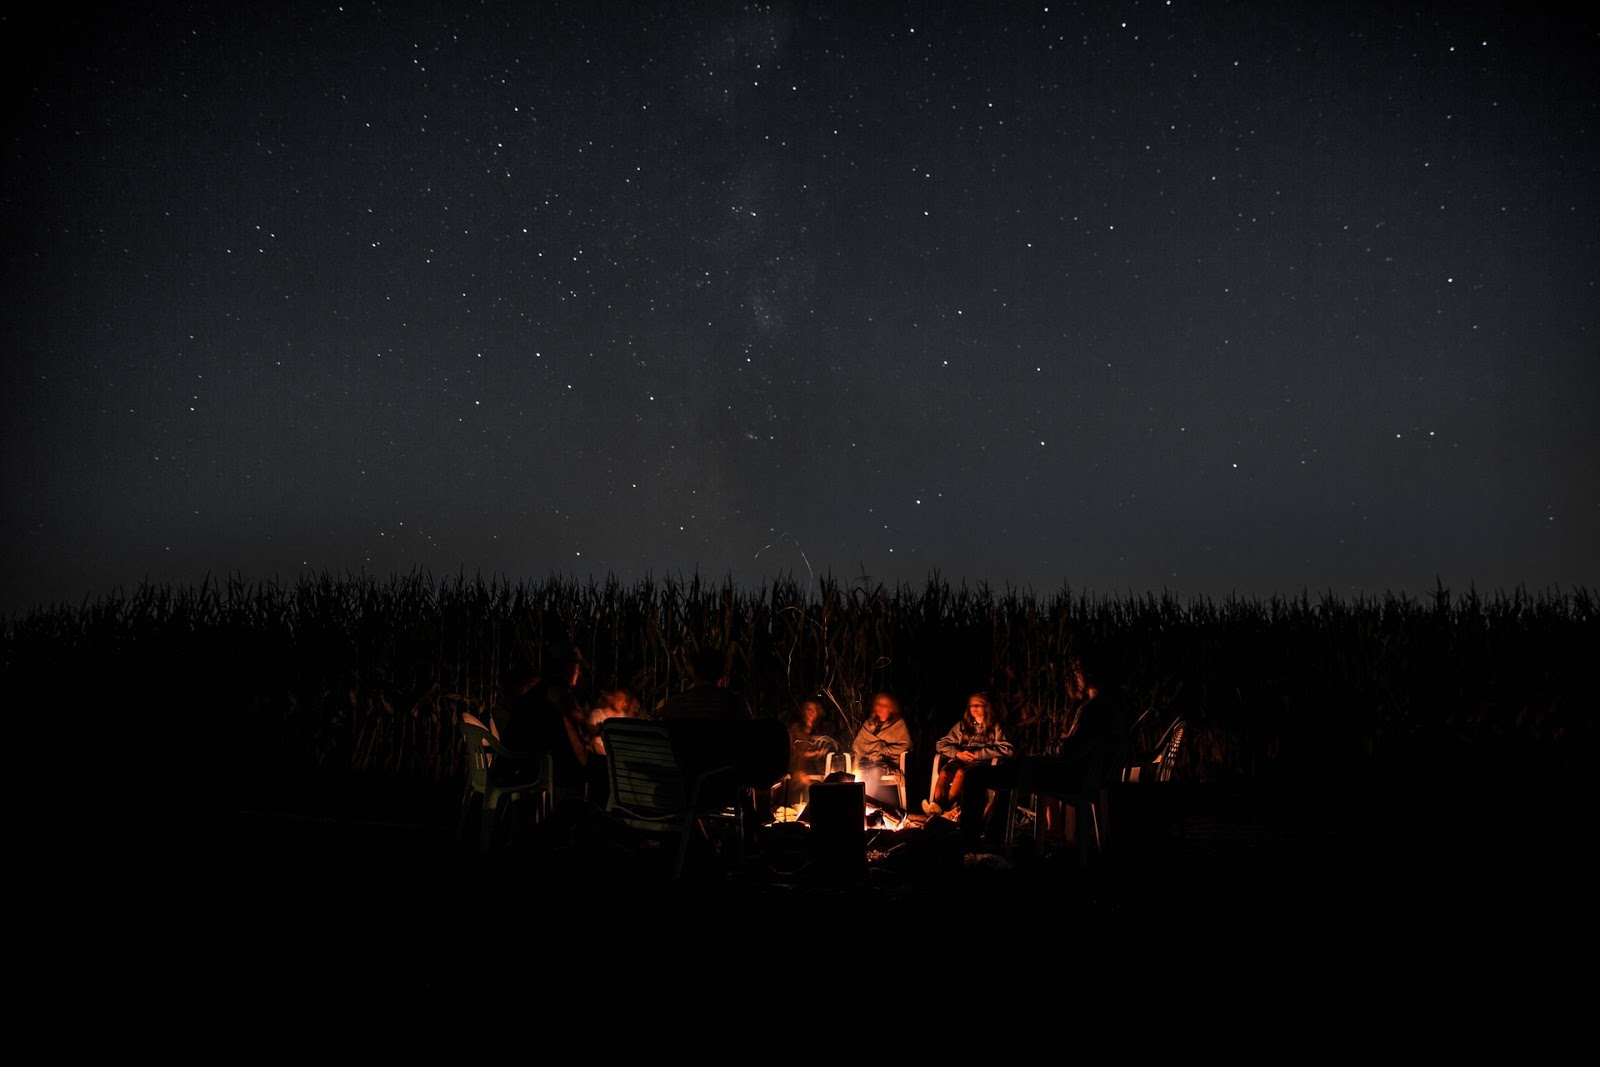 group of people around a campfire